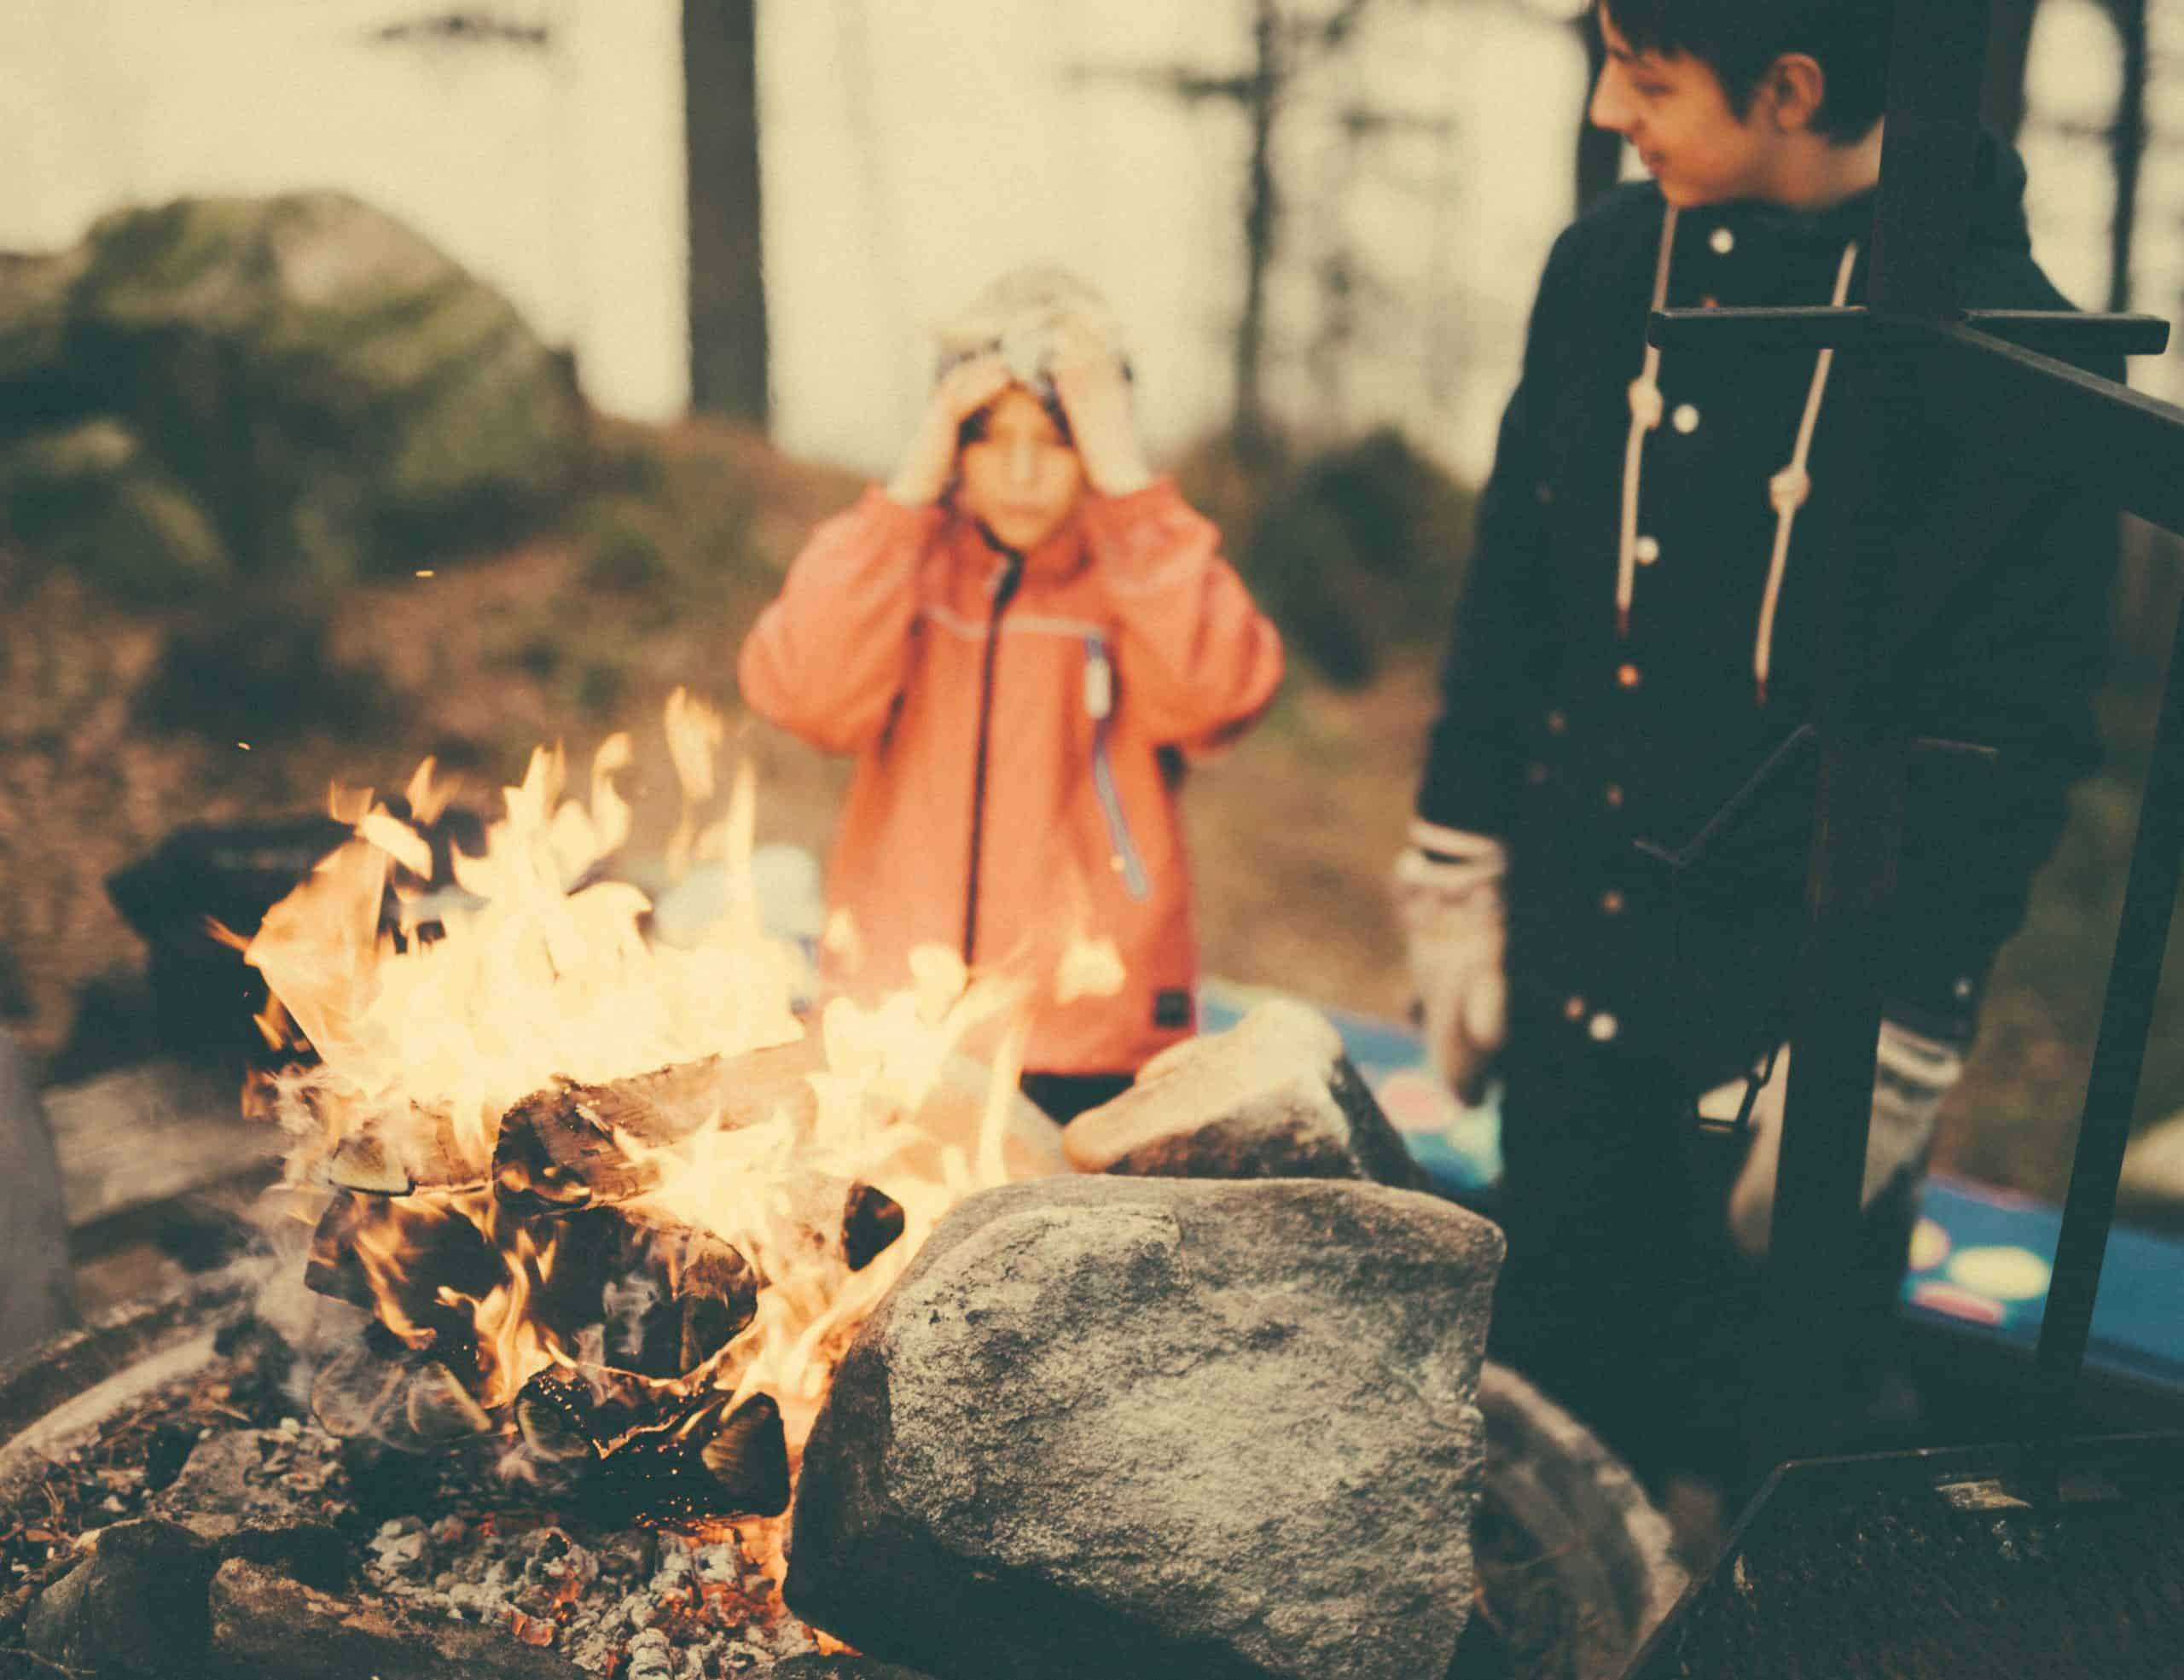 a child and teenager stand near a fire in bors